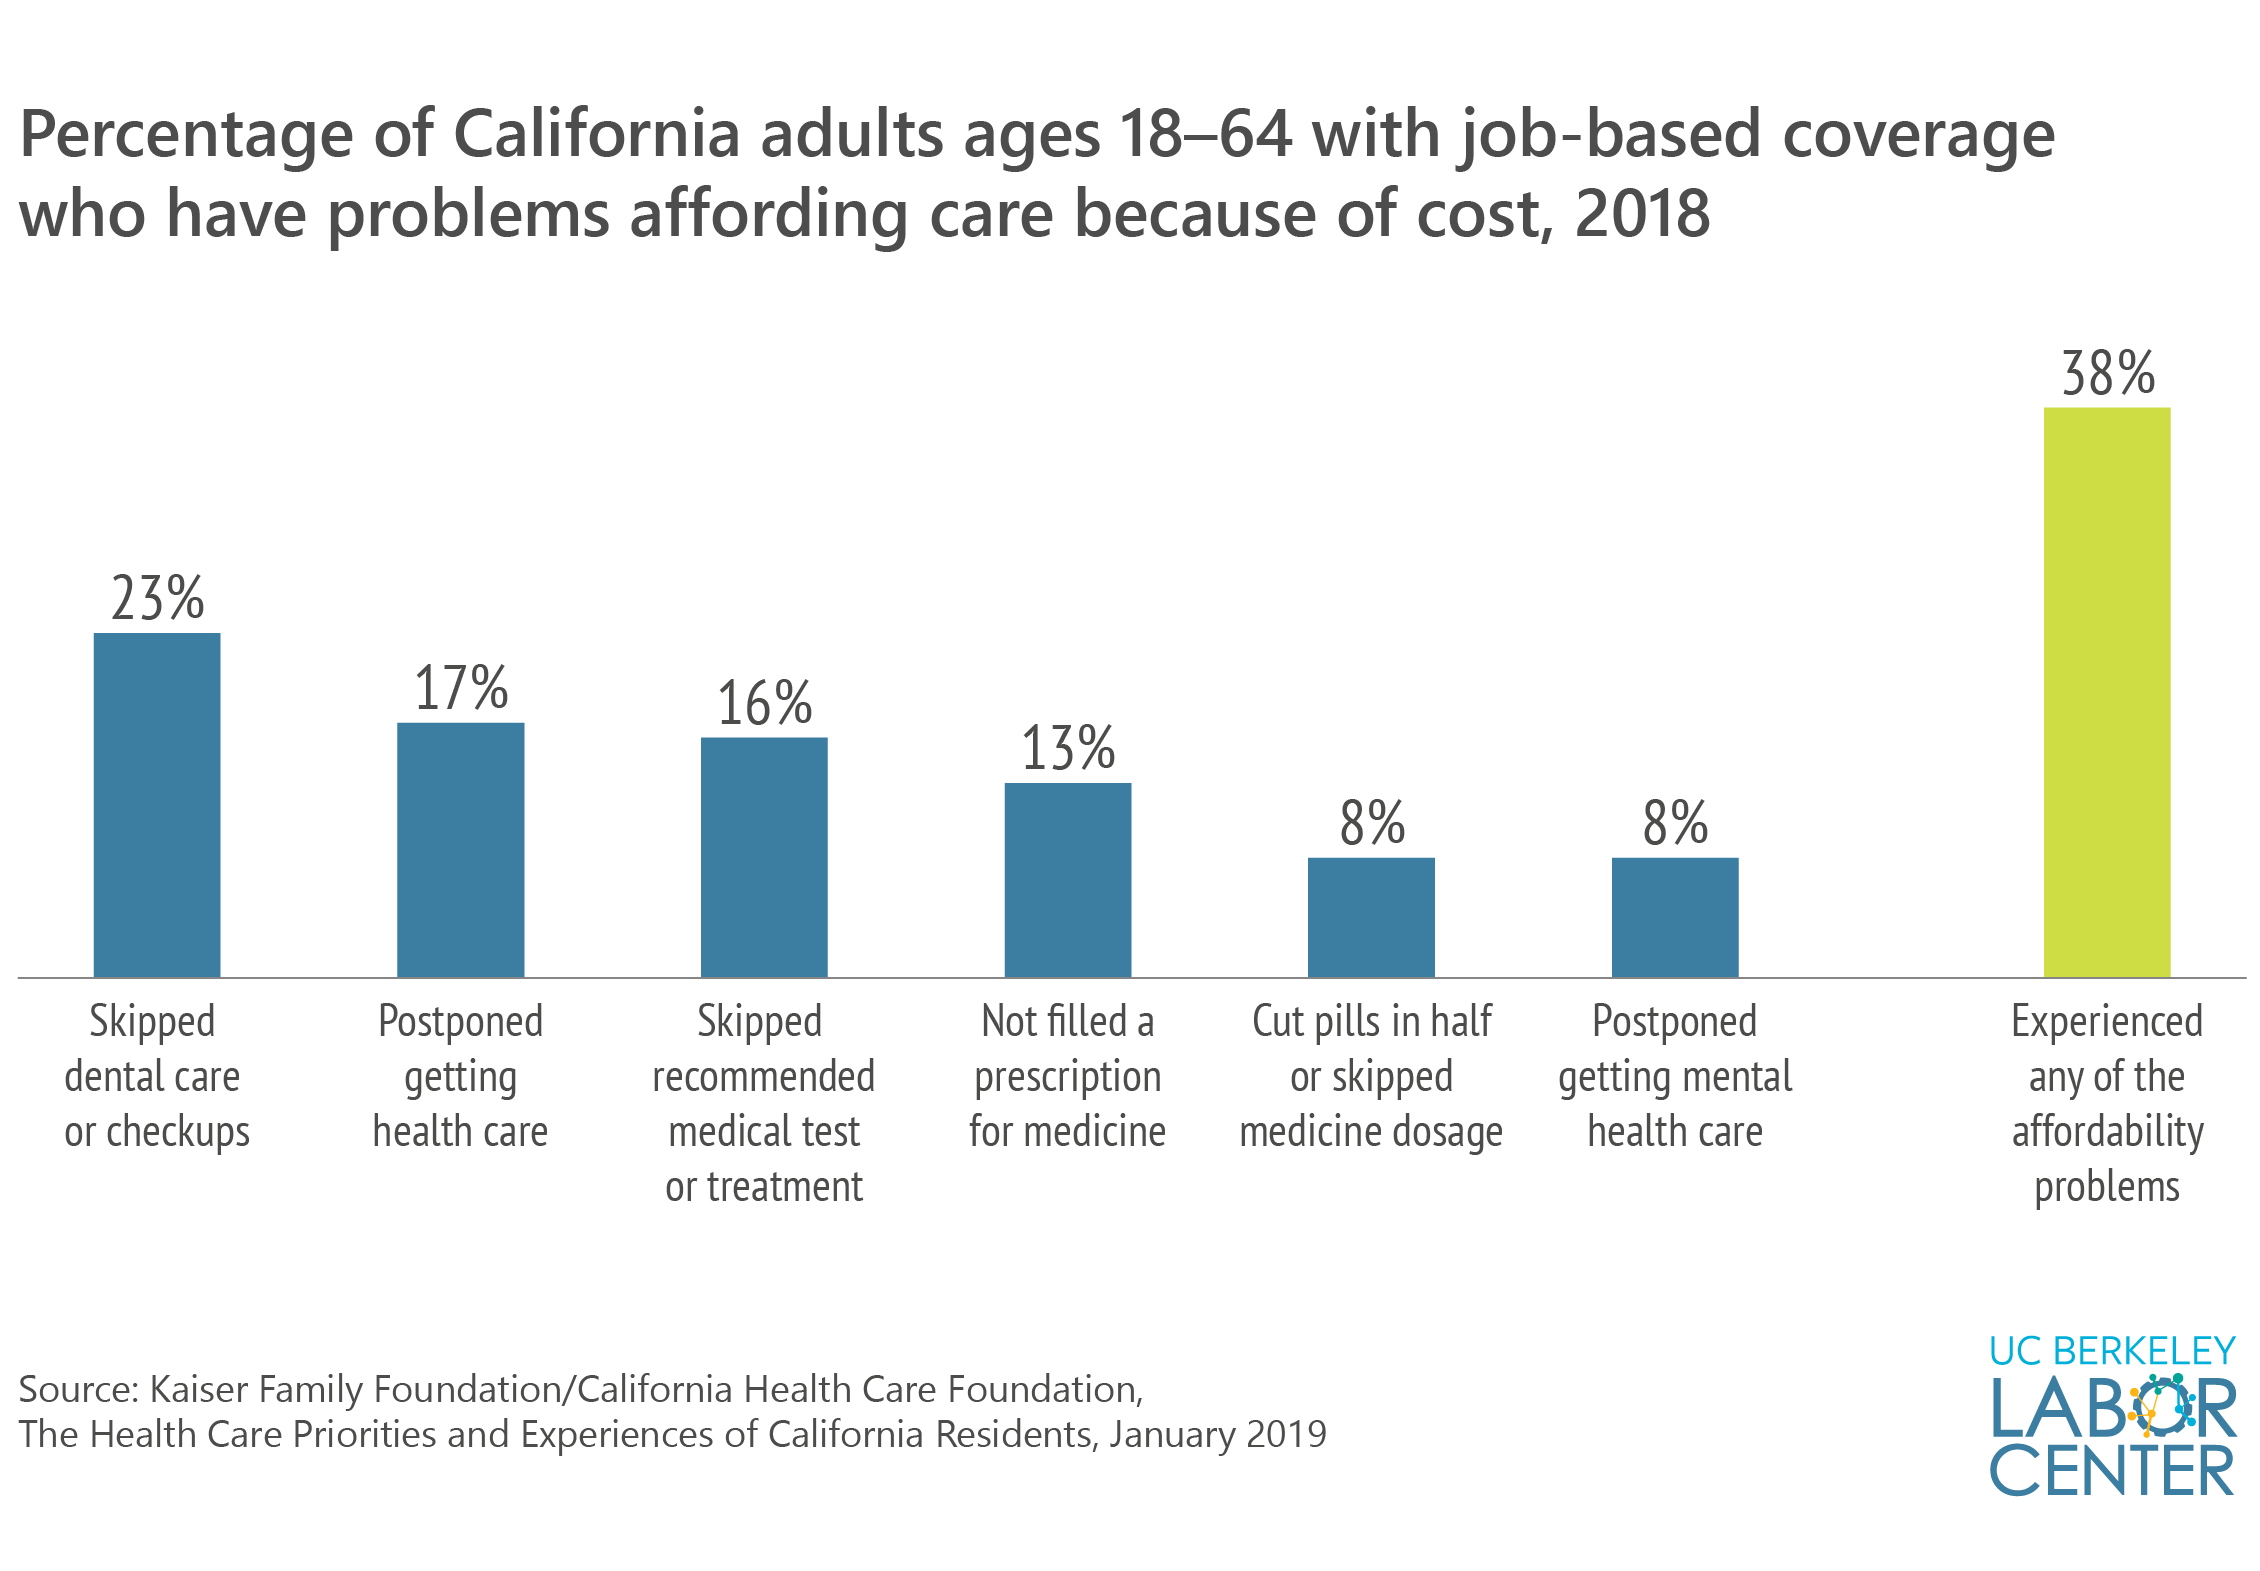 Percentage with problems affording care